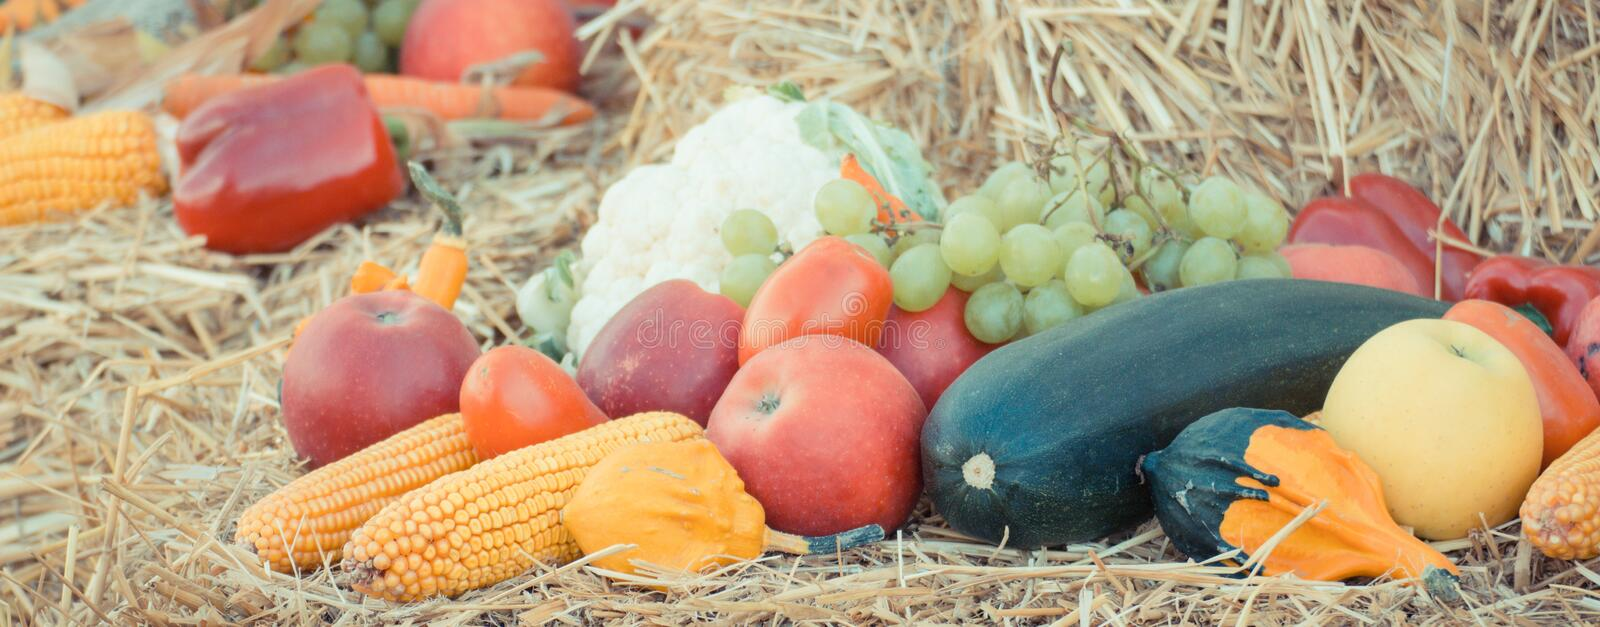 Vintage photo, Fruit and vegetables on straw, agriculture on summer or autumn. Vintage photo, Fresh fruits and vegetables lying on straw, concept of agriculture stock photo